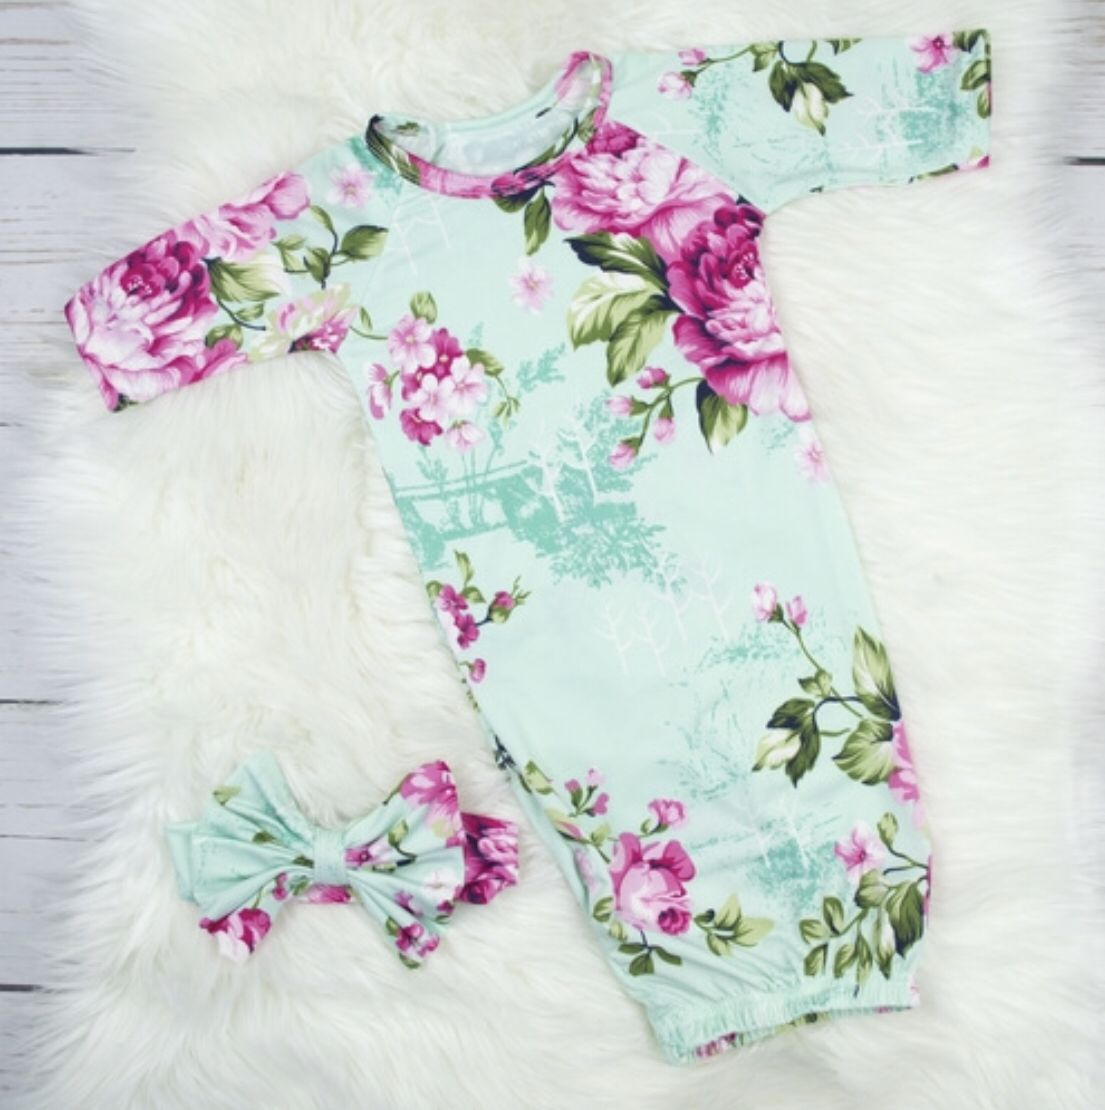 Breastfeeding Nightgown Night Gown and Baby Gown Set -Nursing Gown and Baby Outfit 3 PC Set Mom and Baby Hospital Outfit